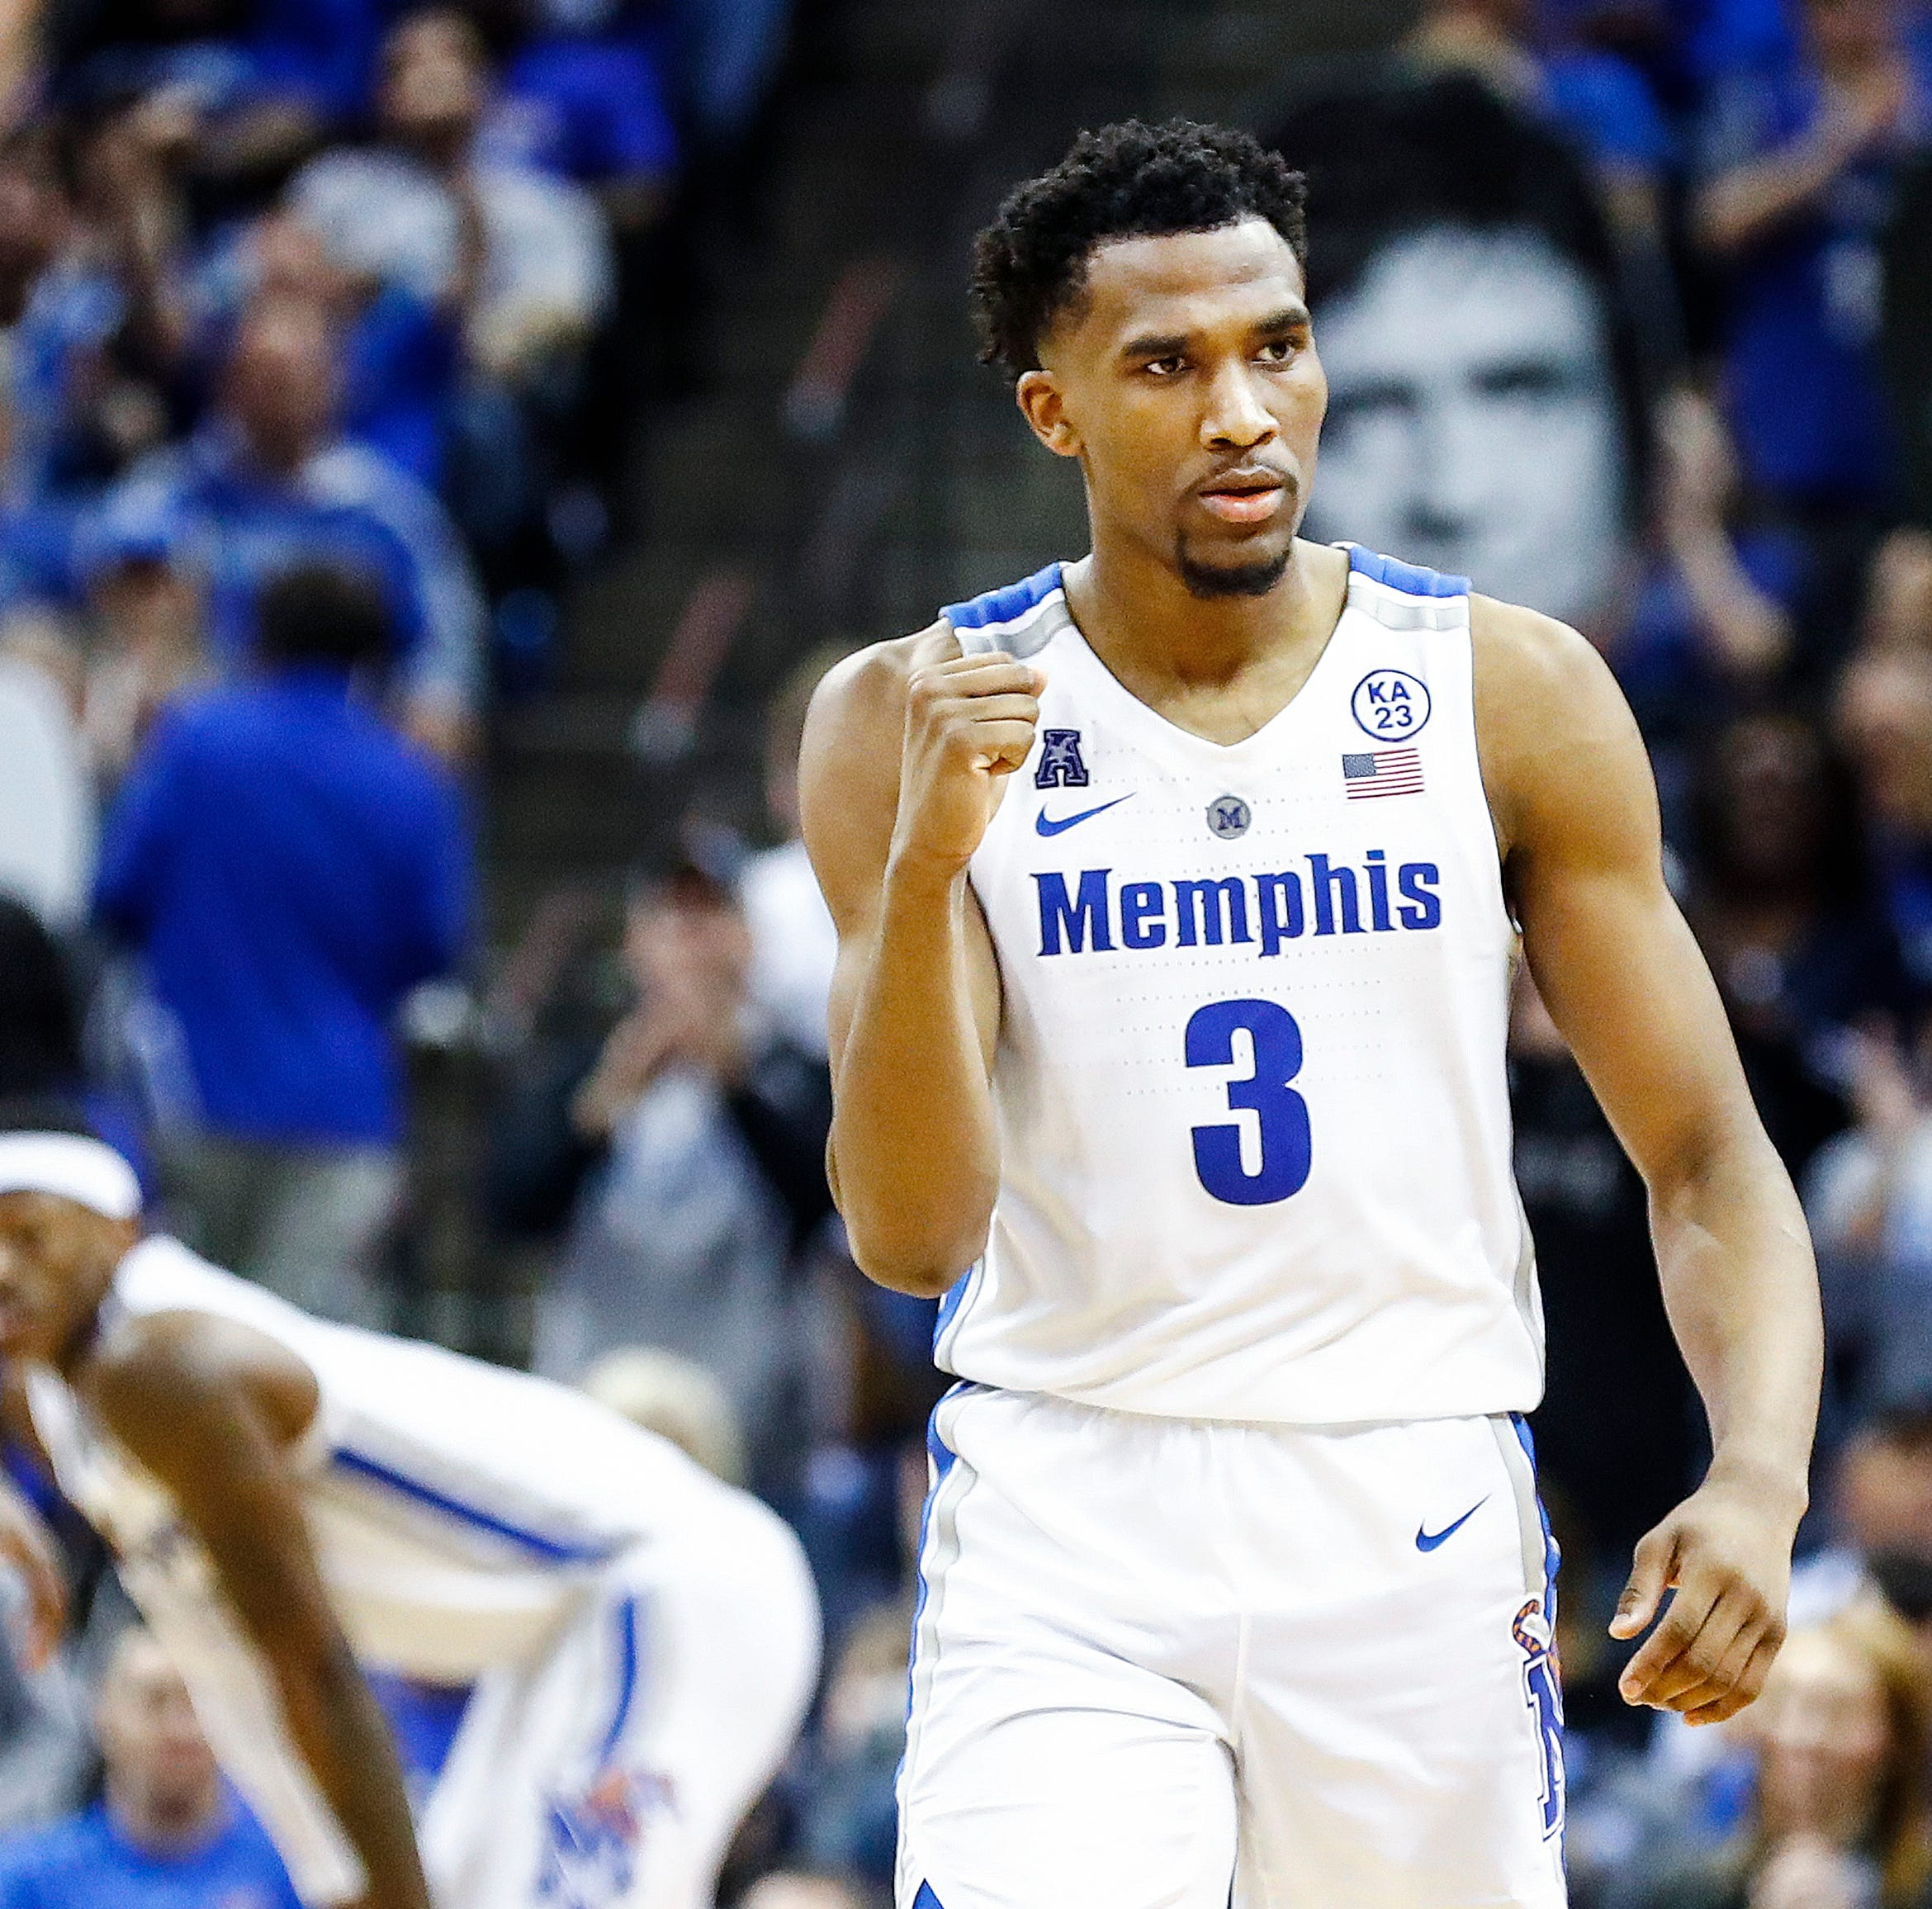 March Madness: 5 storylines to follow at this week's AAC Tournament